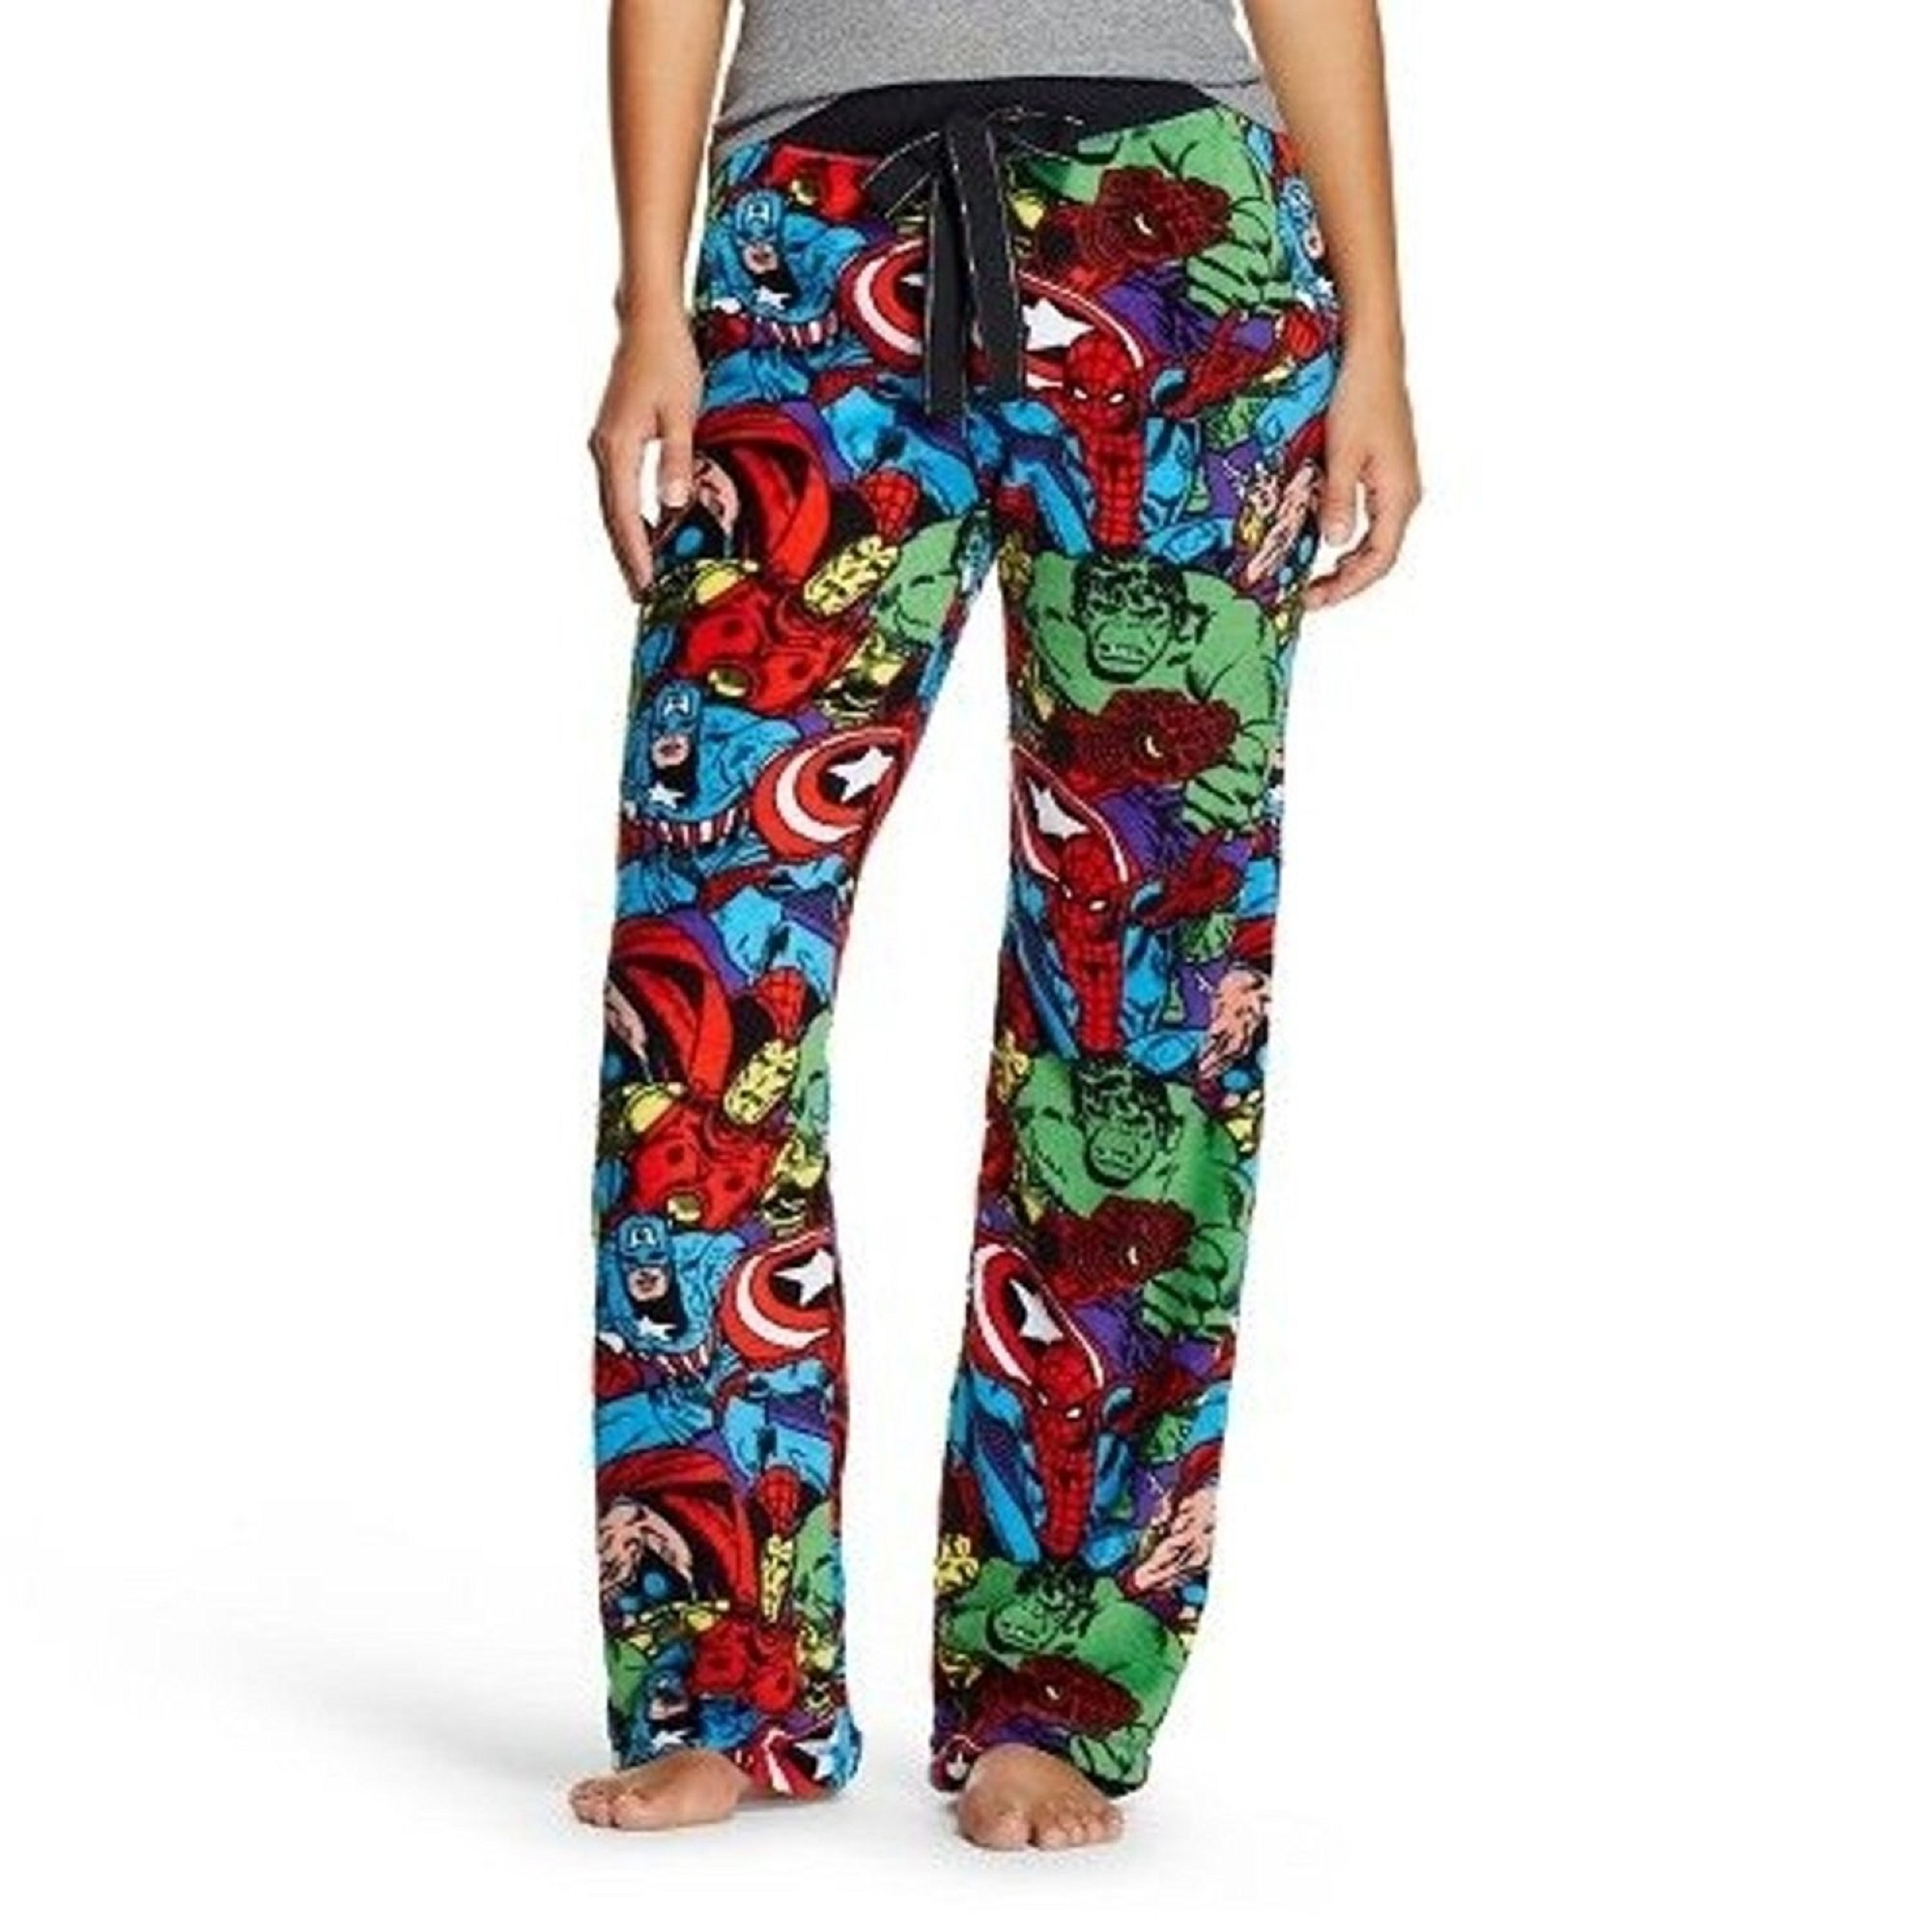 Marvel The Avengers Women's Plush Fleece Lounge Sleep Bottom Pants PJ, Captain America, Thor, The Hulk, Spiderman (Medium)